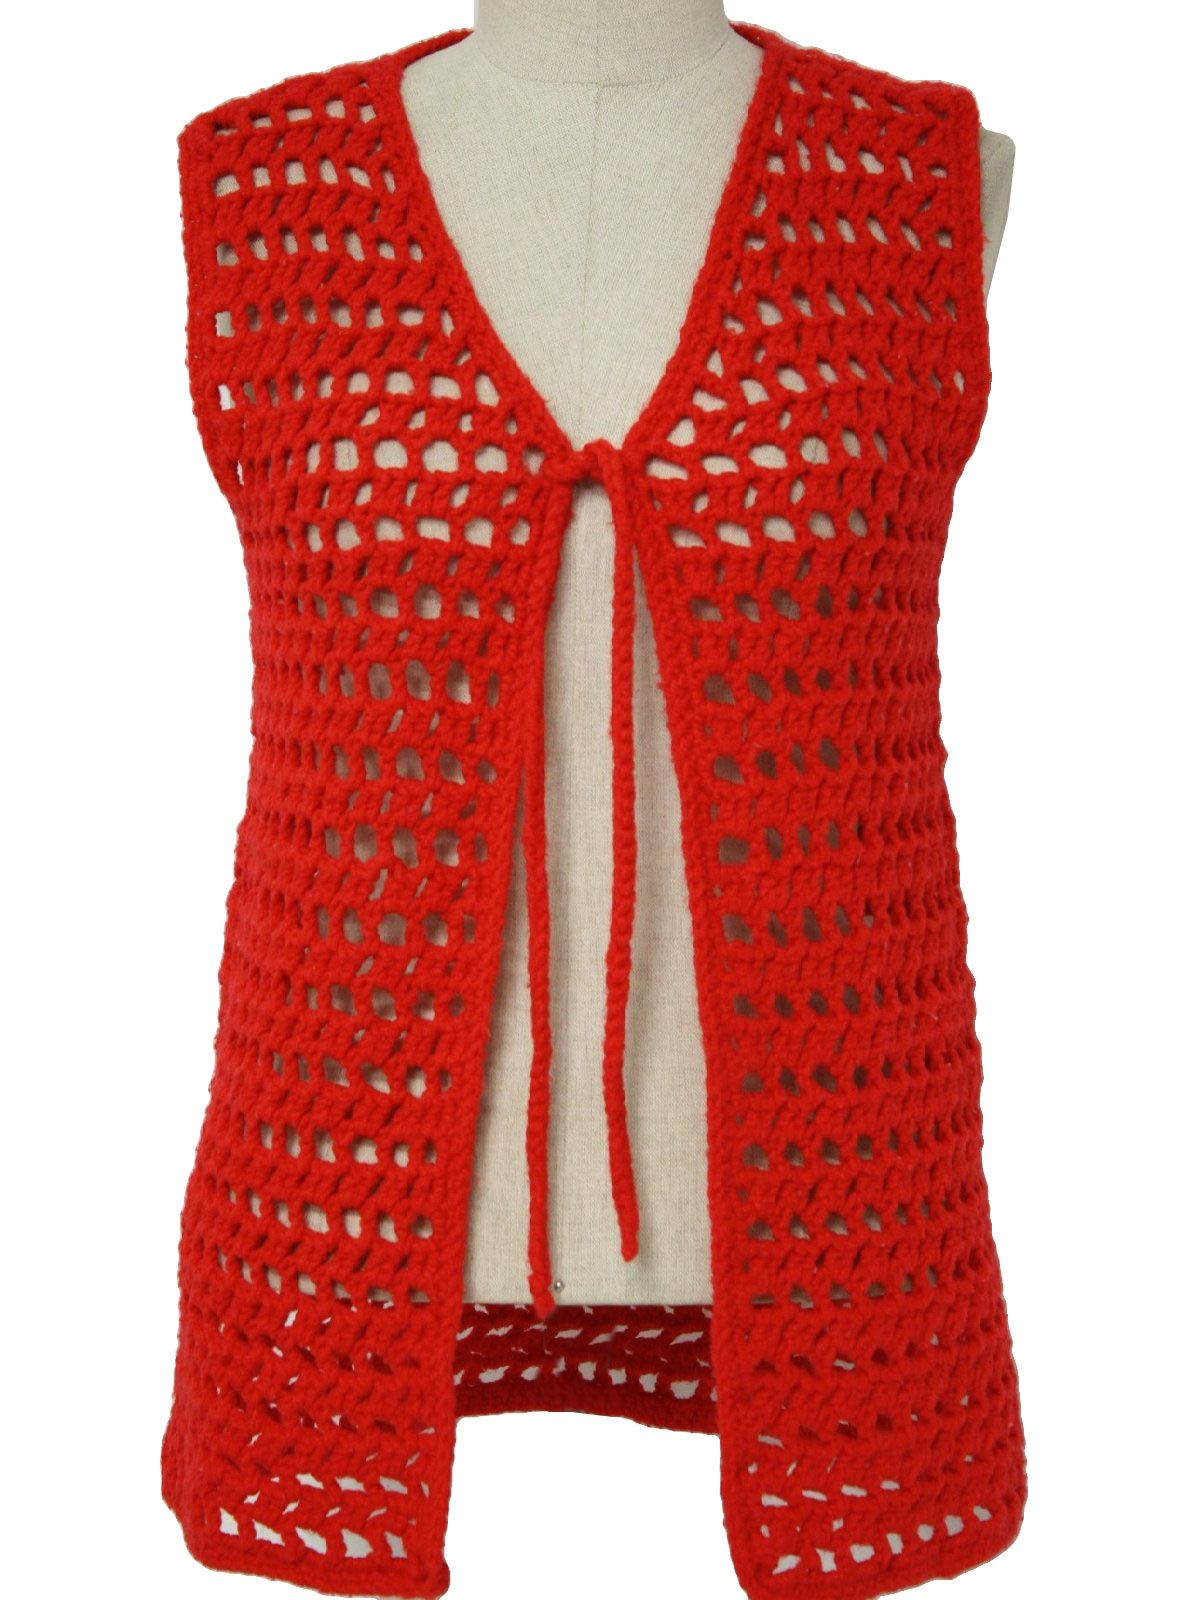 1970s Home Crafter Womens Crochet Sweater Vest Memories Crochet